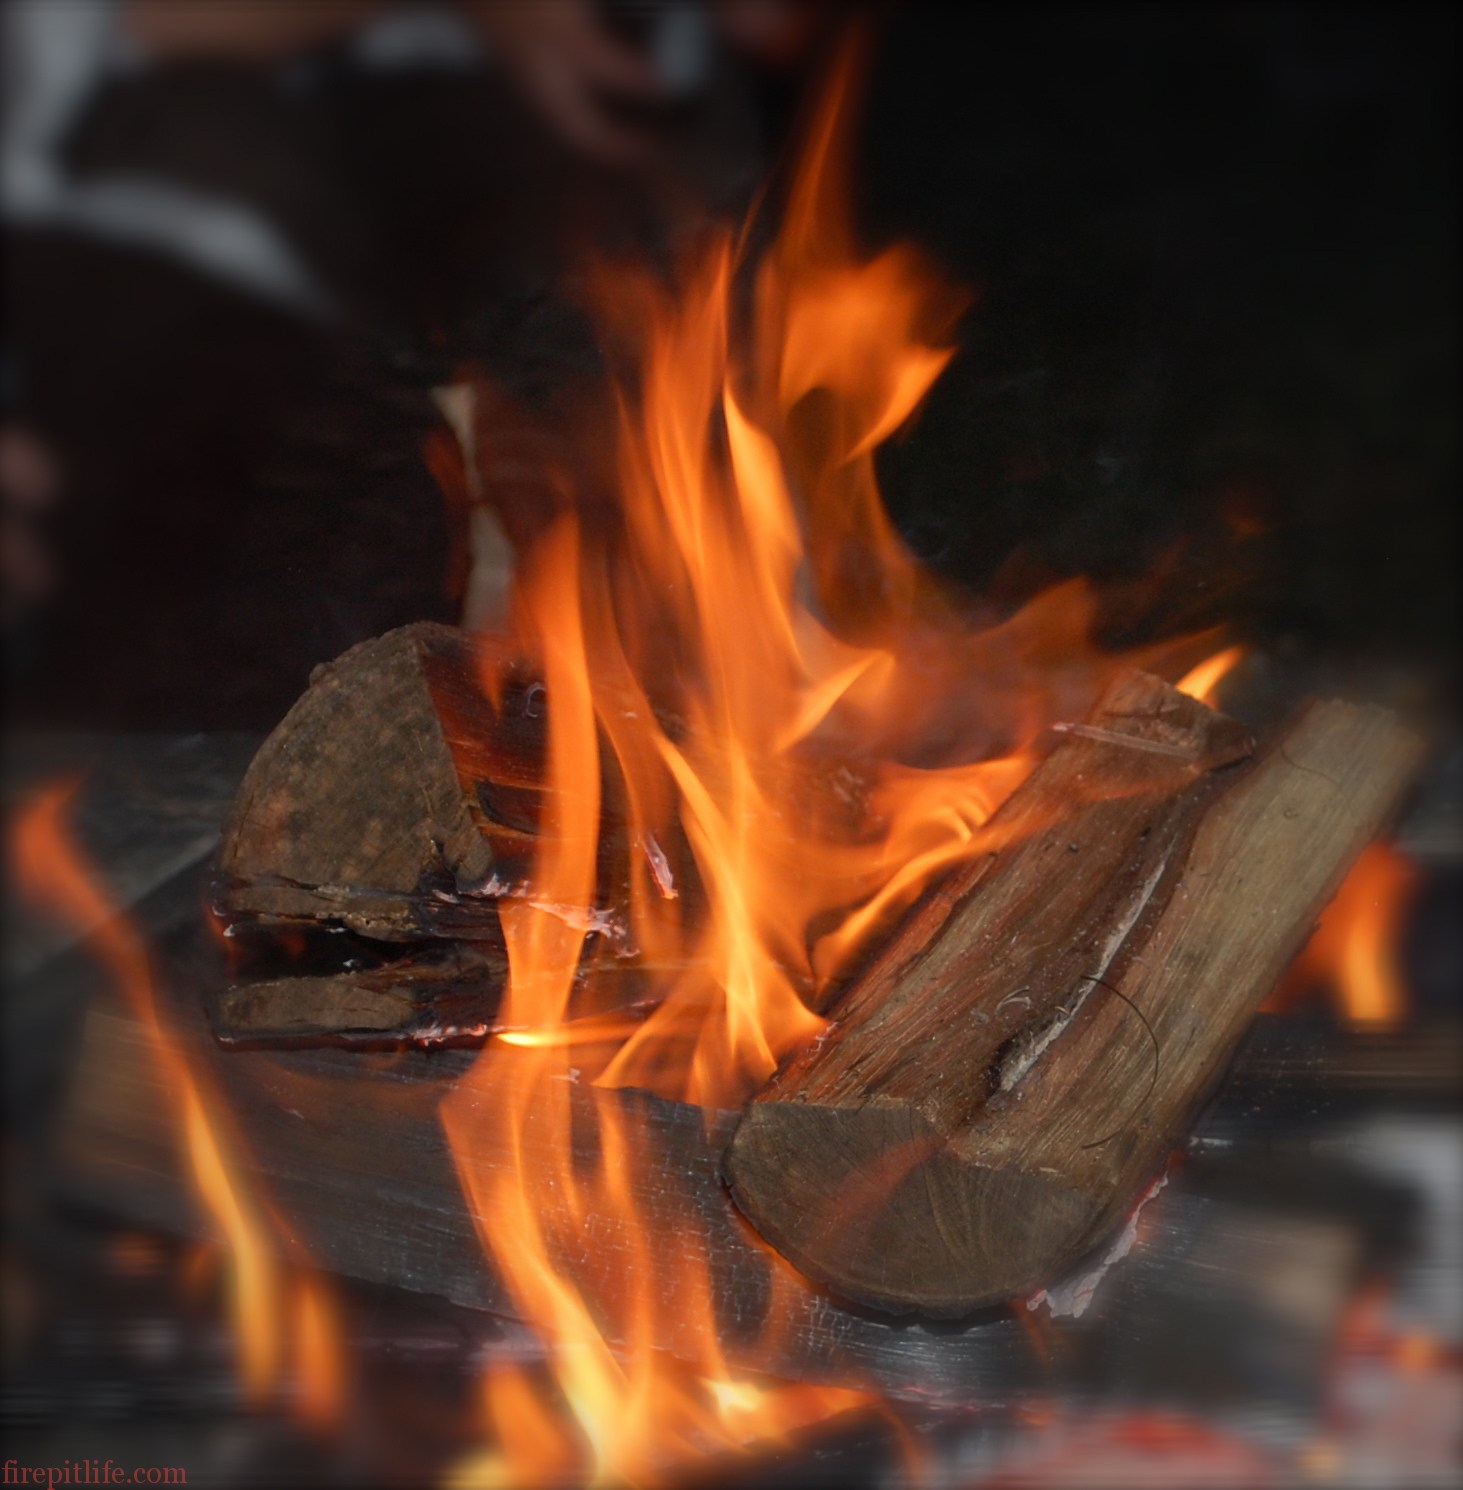 Everything You Need To Know About Burning Wood - Fire Pit Wood 101 ...